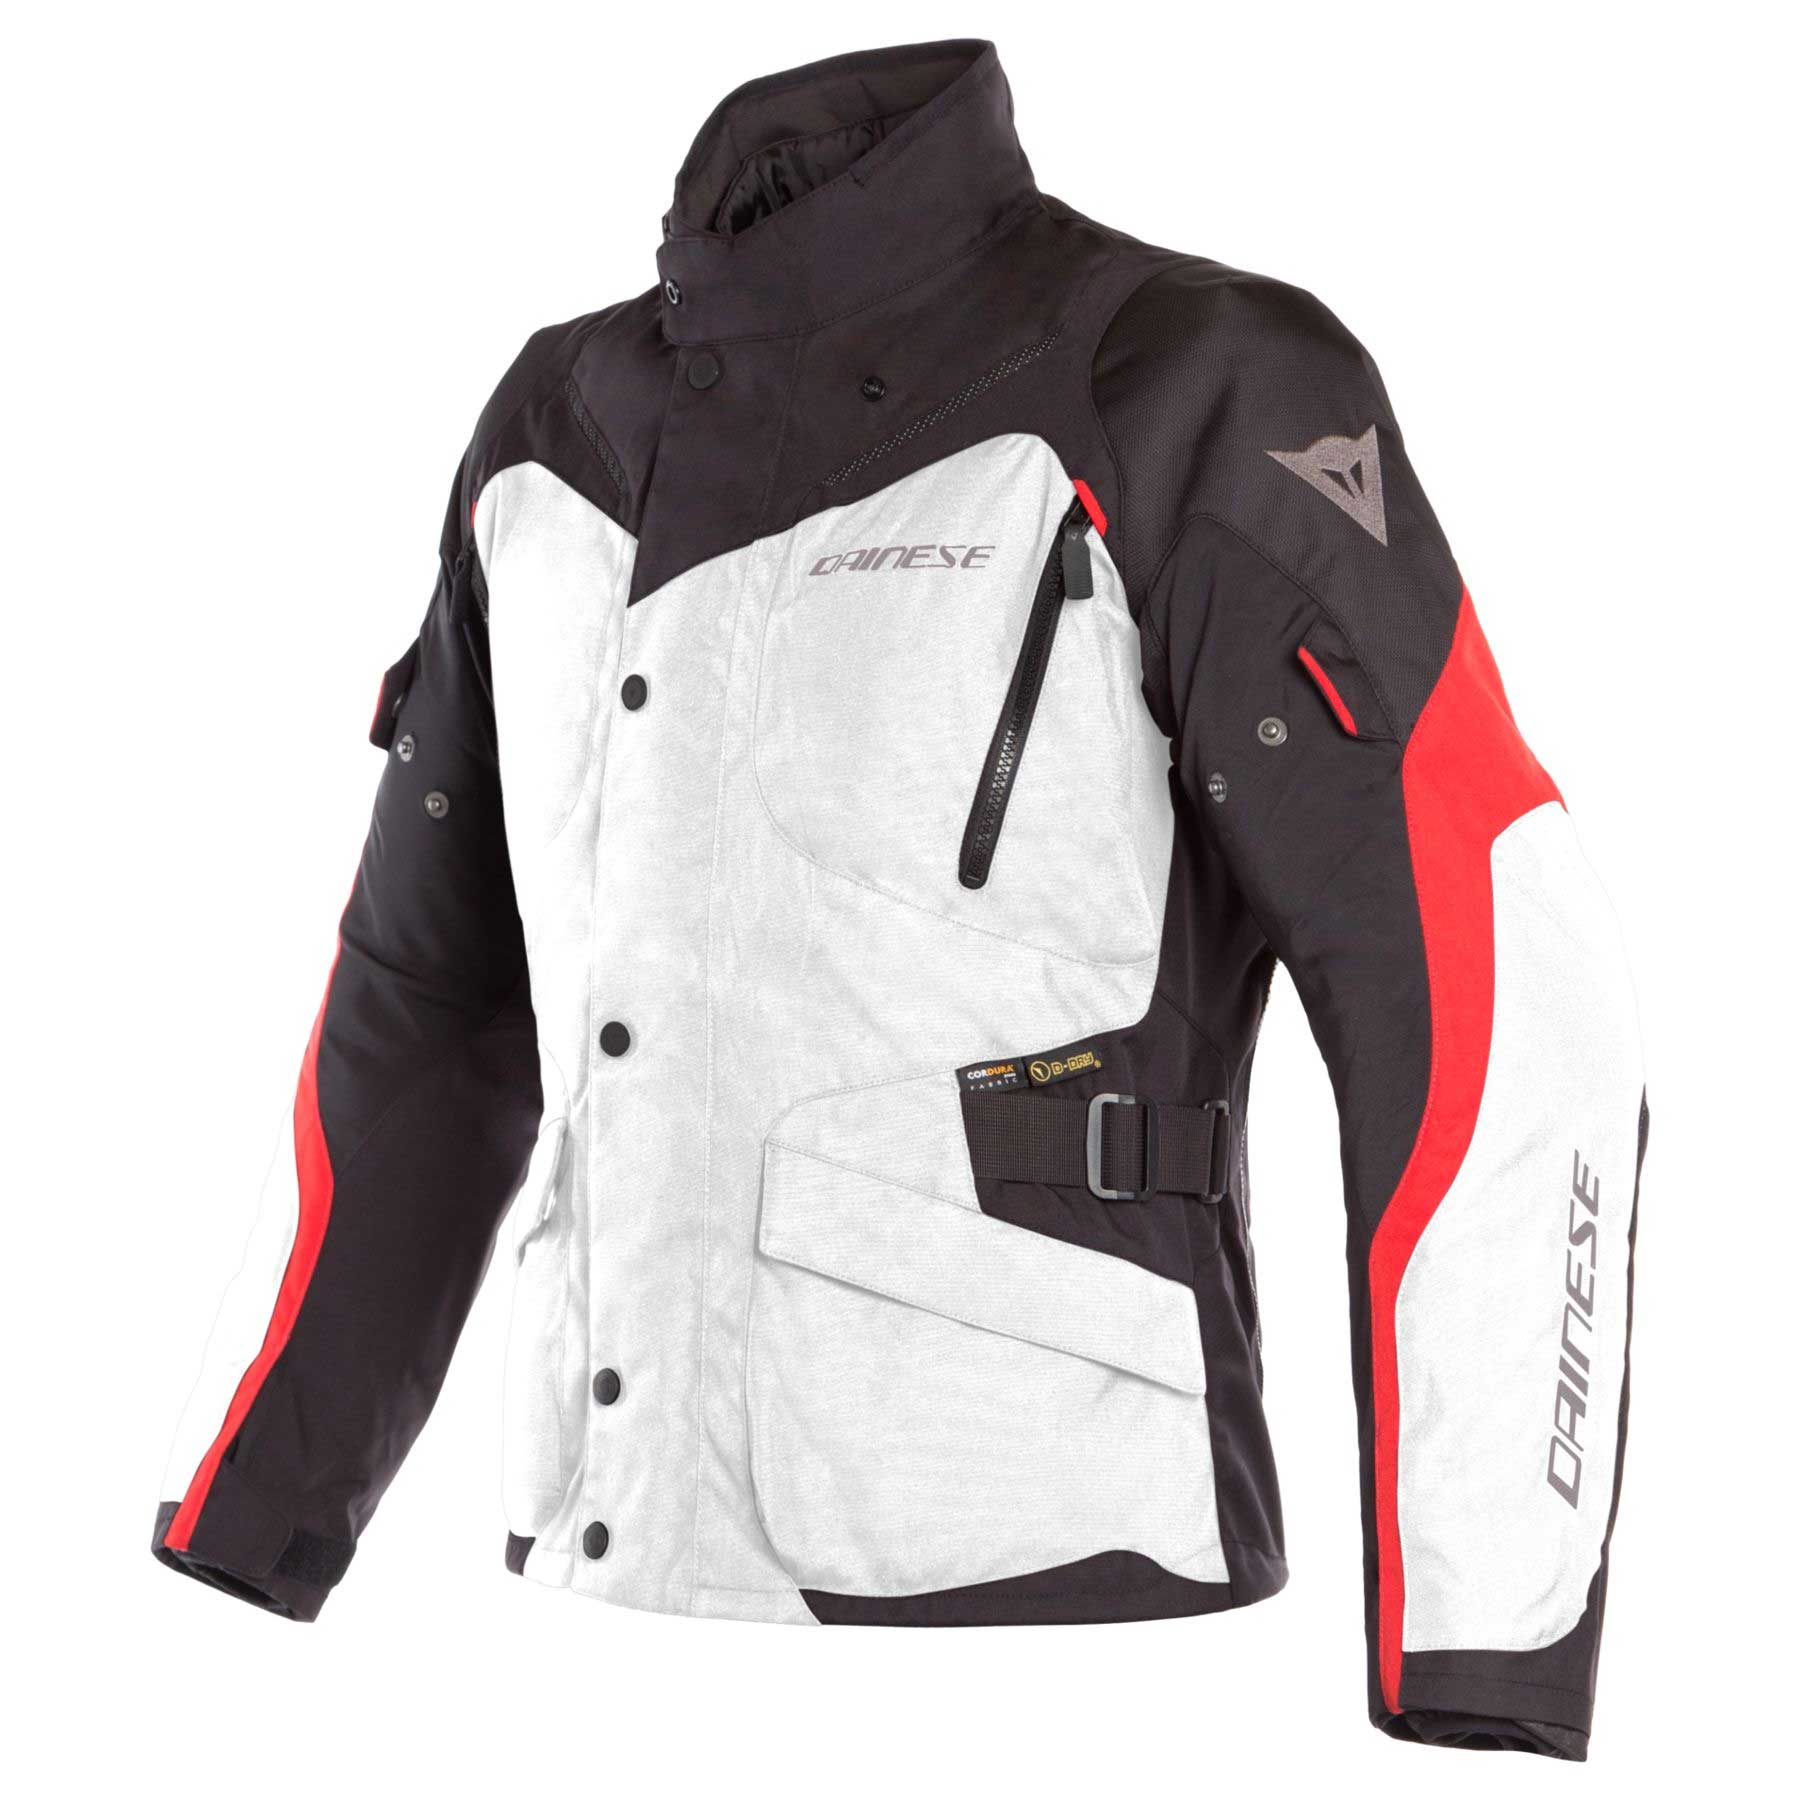 Dainese Giacca Tempest 2 D-dry Bianco Rosso Nero